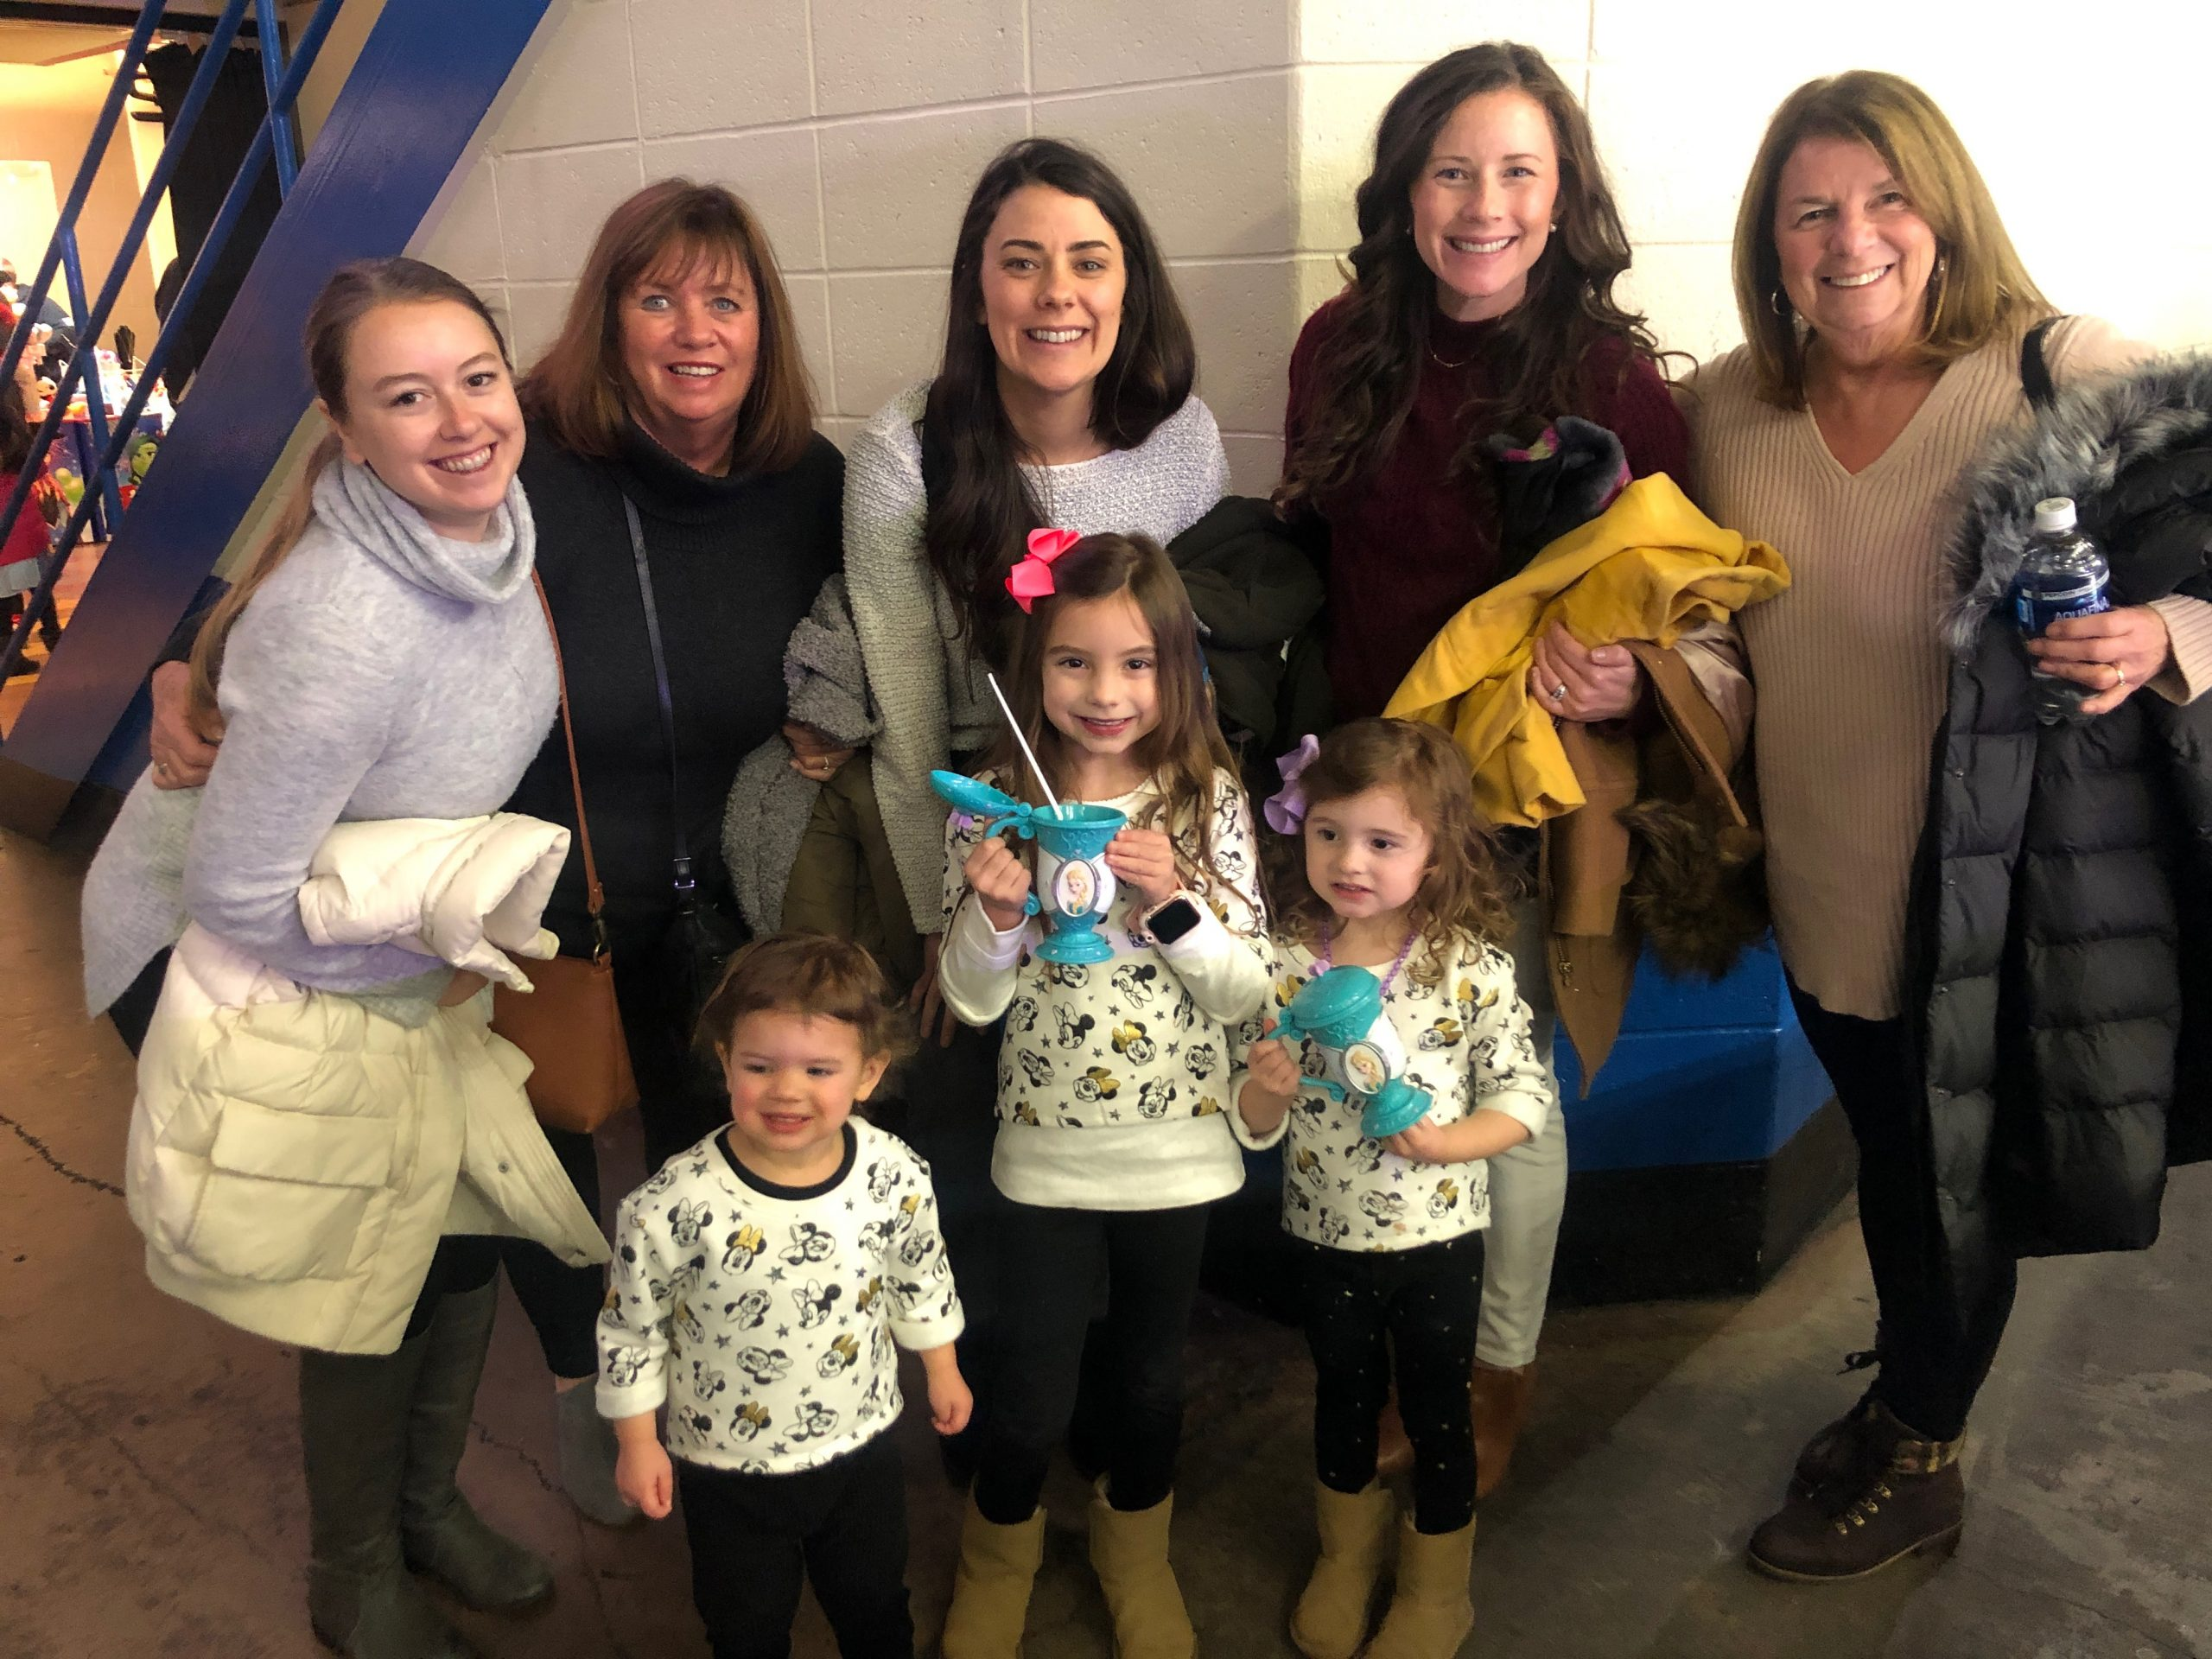 Group of Ladies from toddler to Grandma at disney on ice